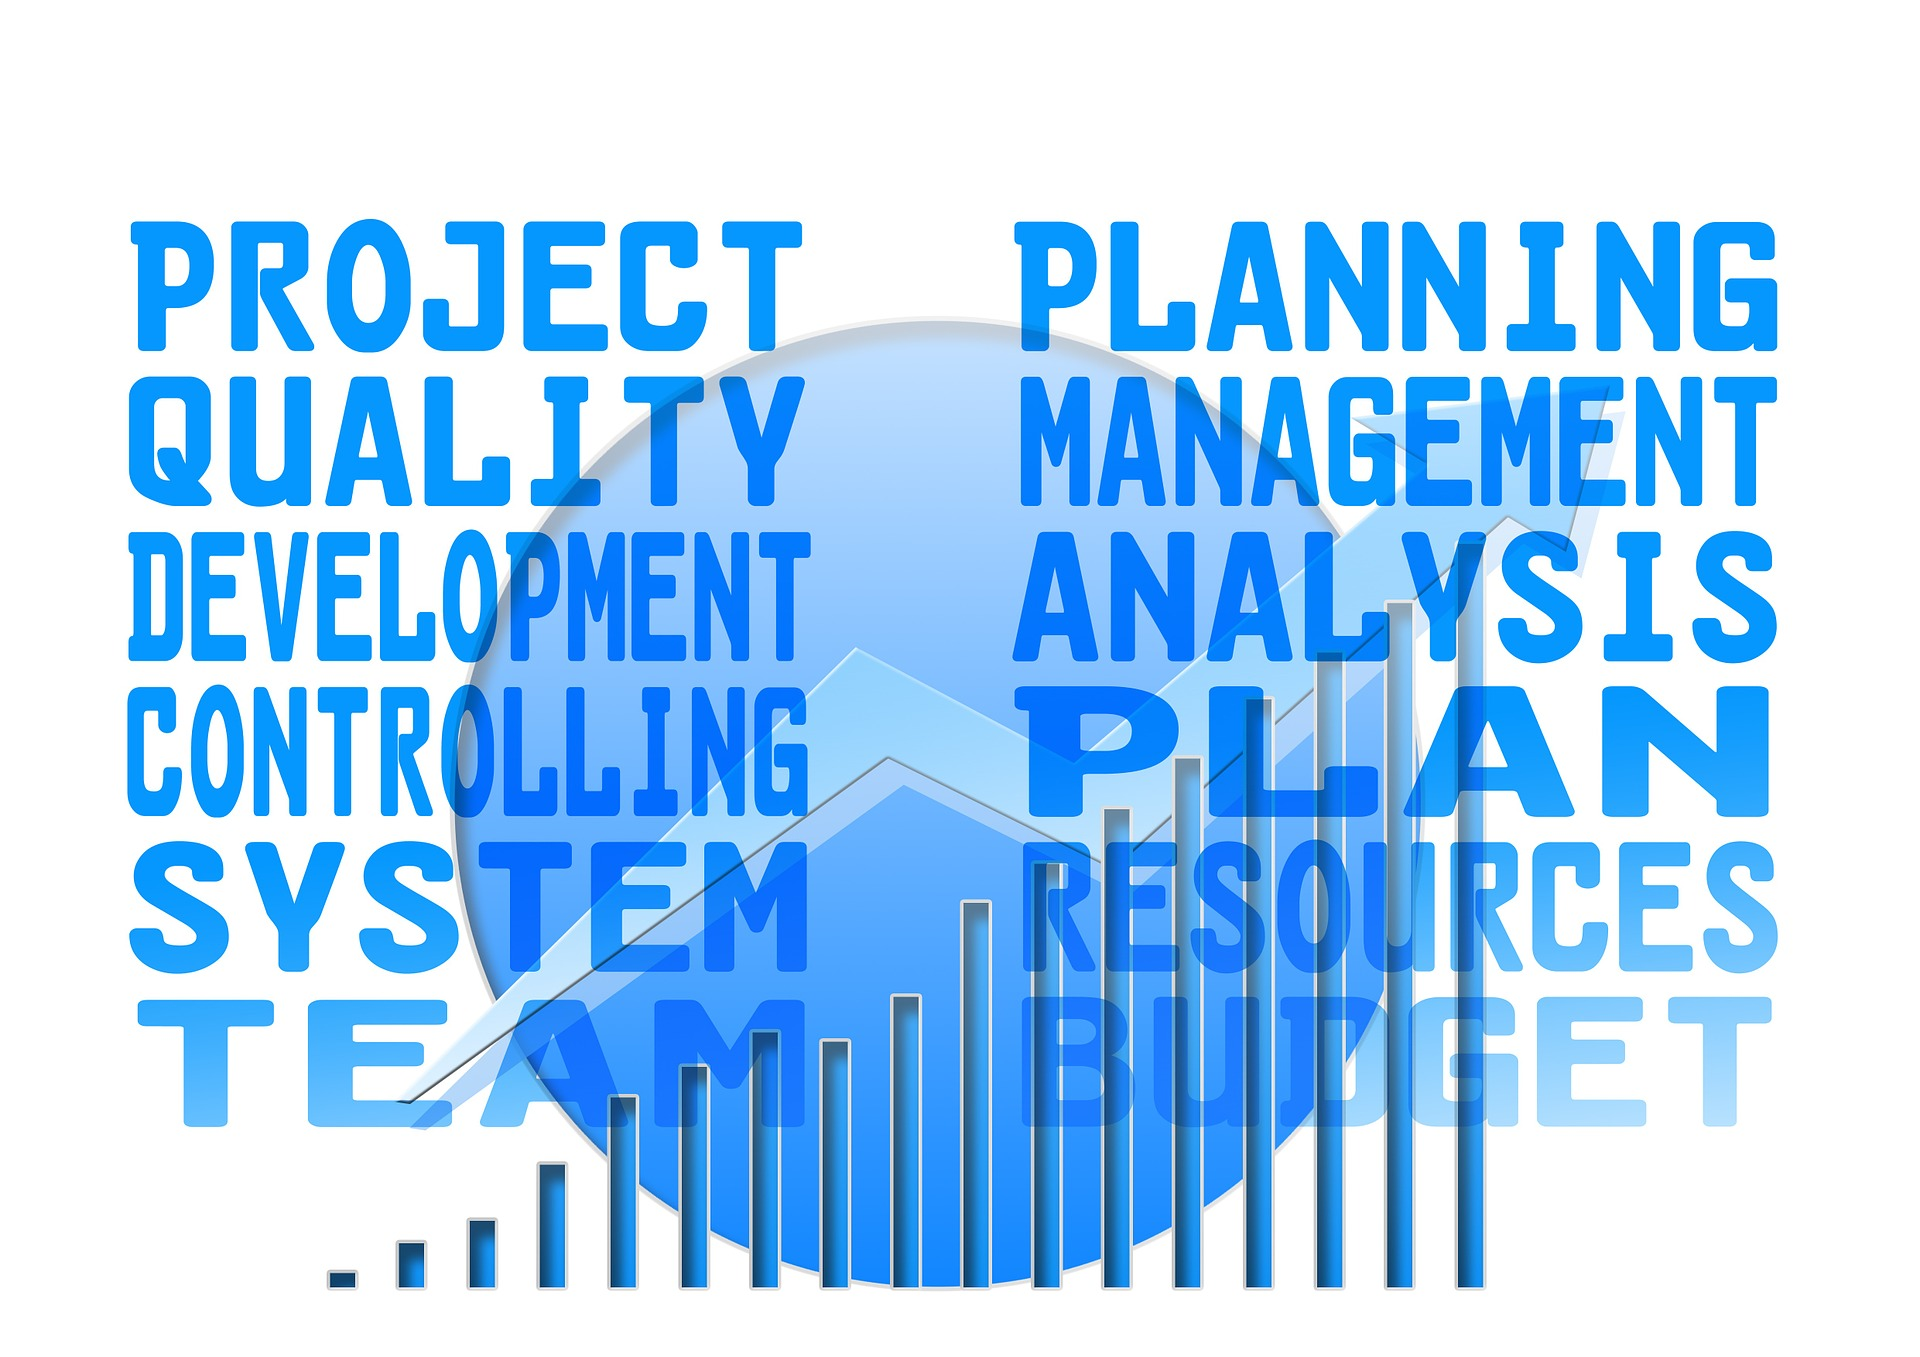 You inventory planning needs